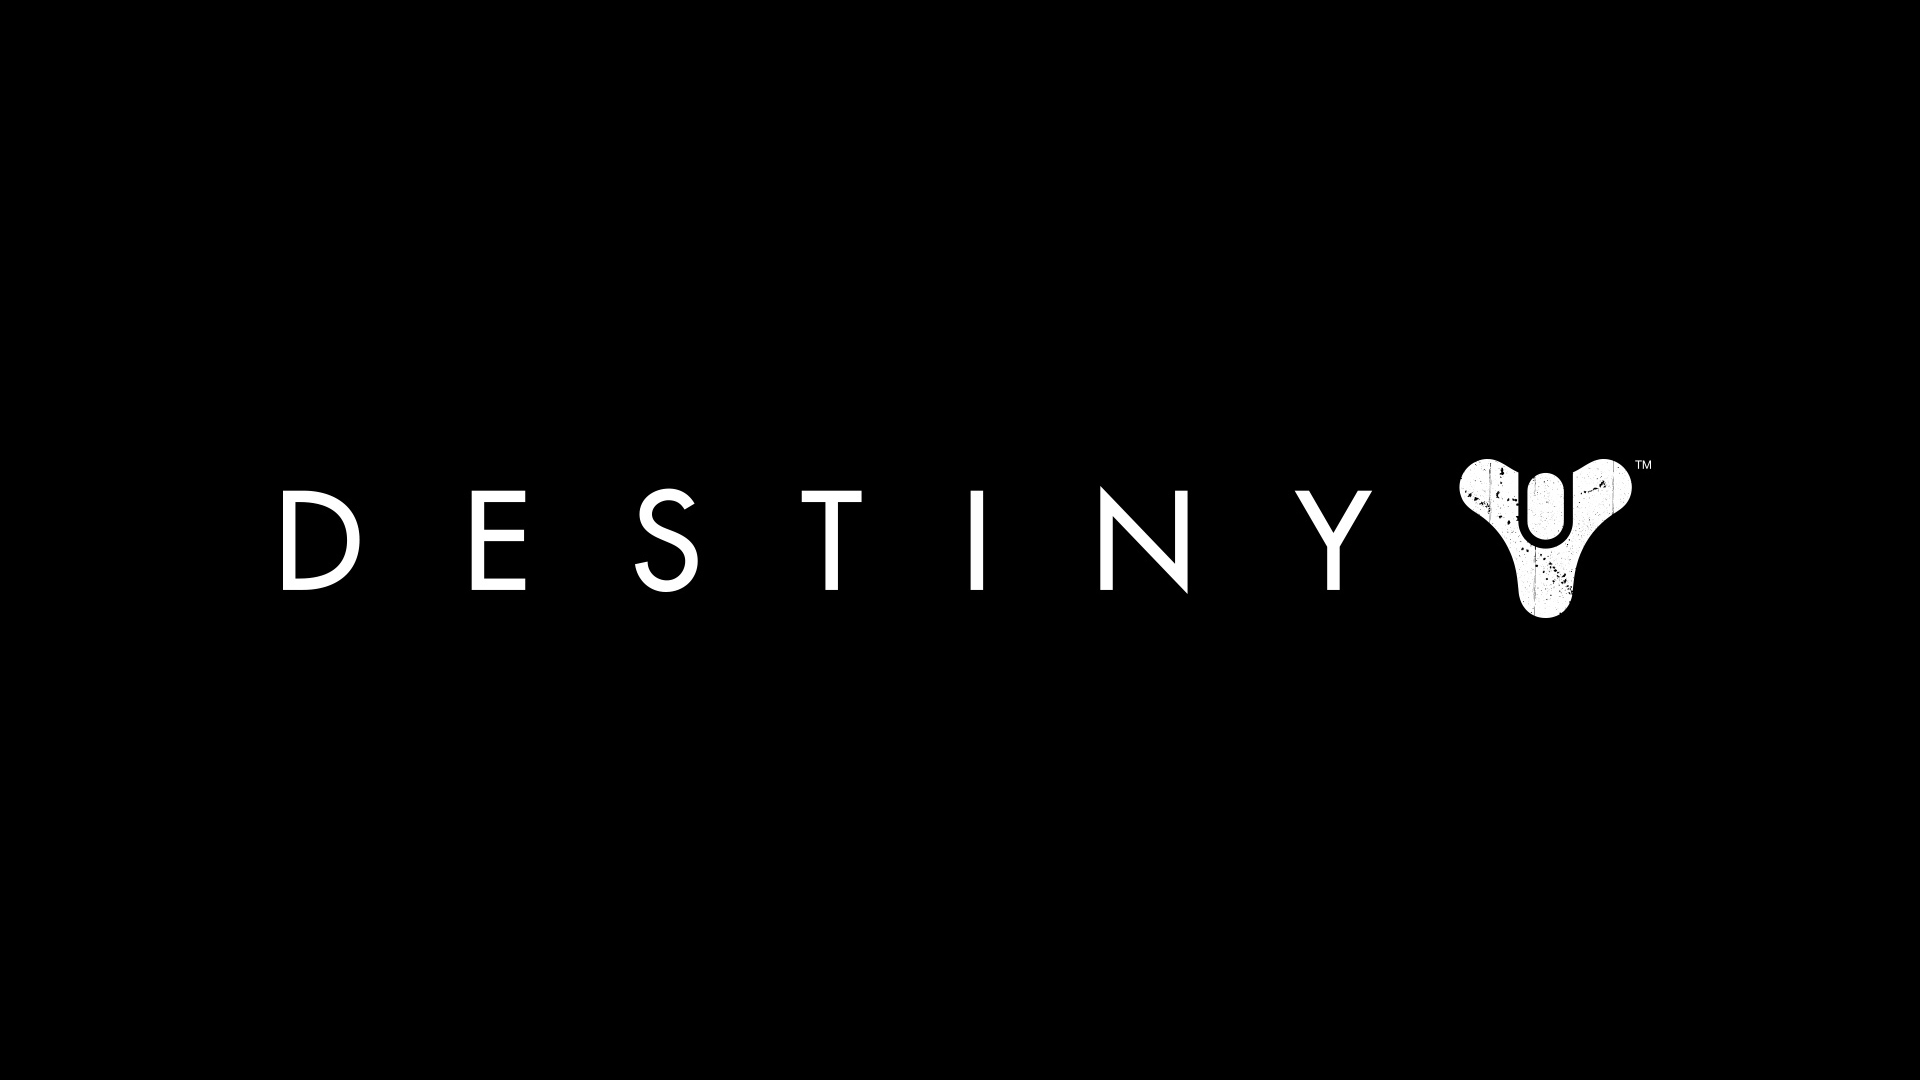 destiny logo wallpaper 41878